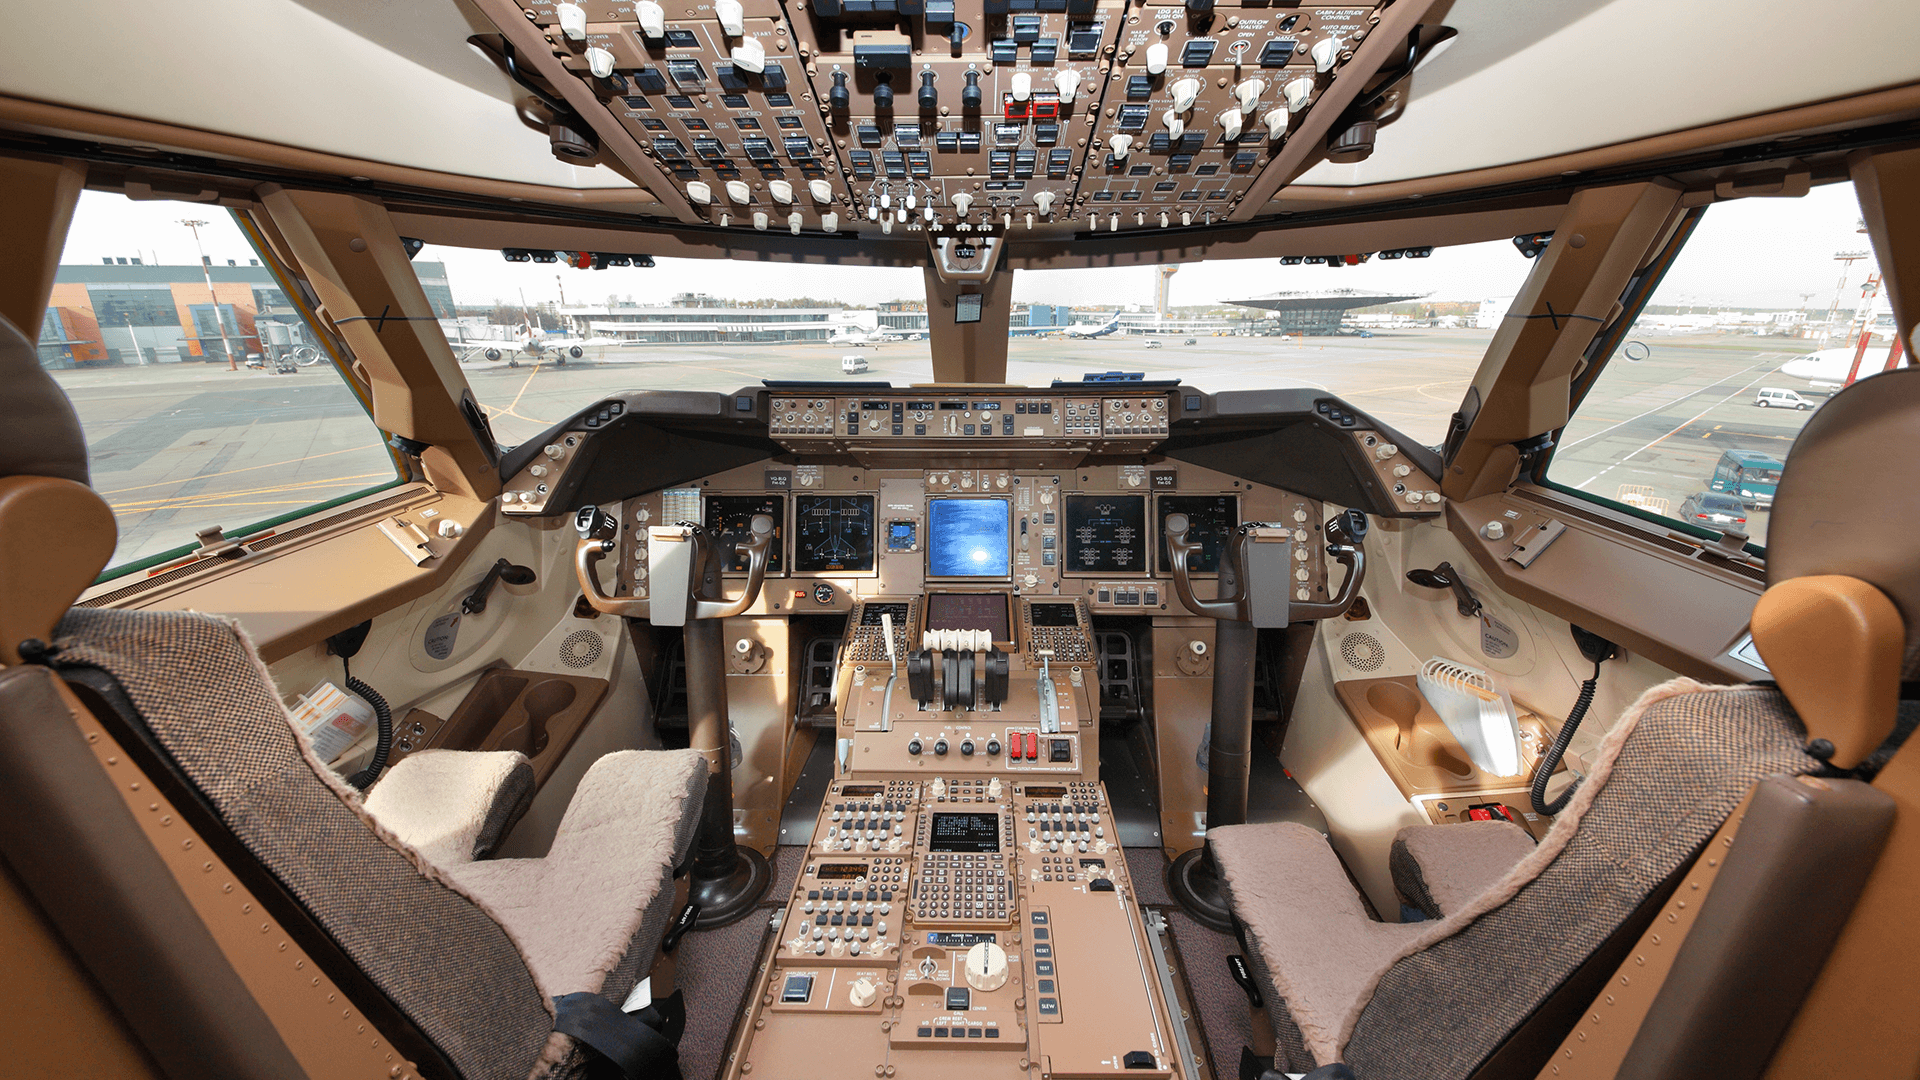 Boeing 747 - Cockpit of a Boeing 747